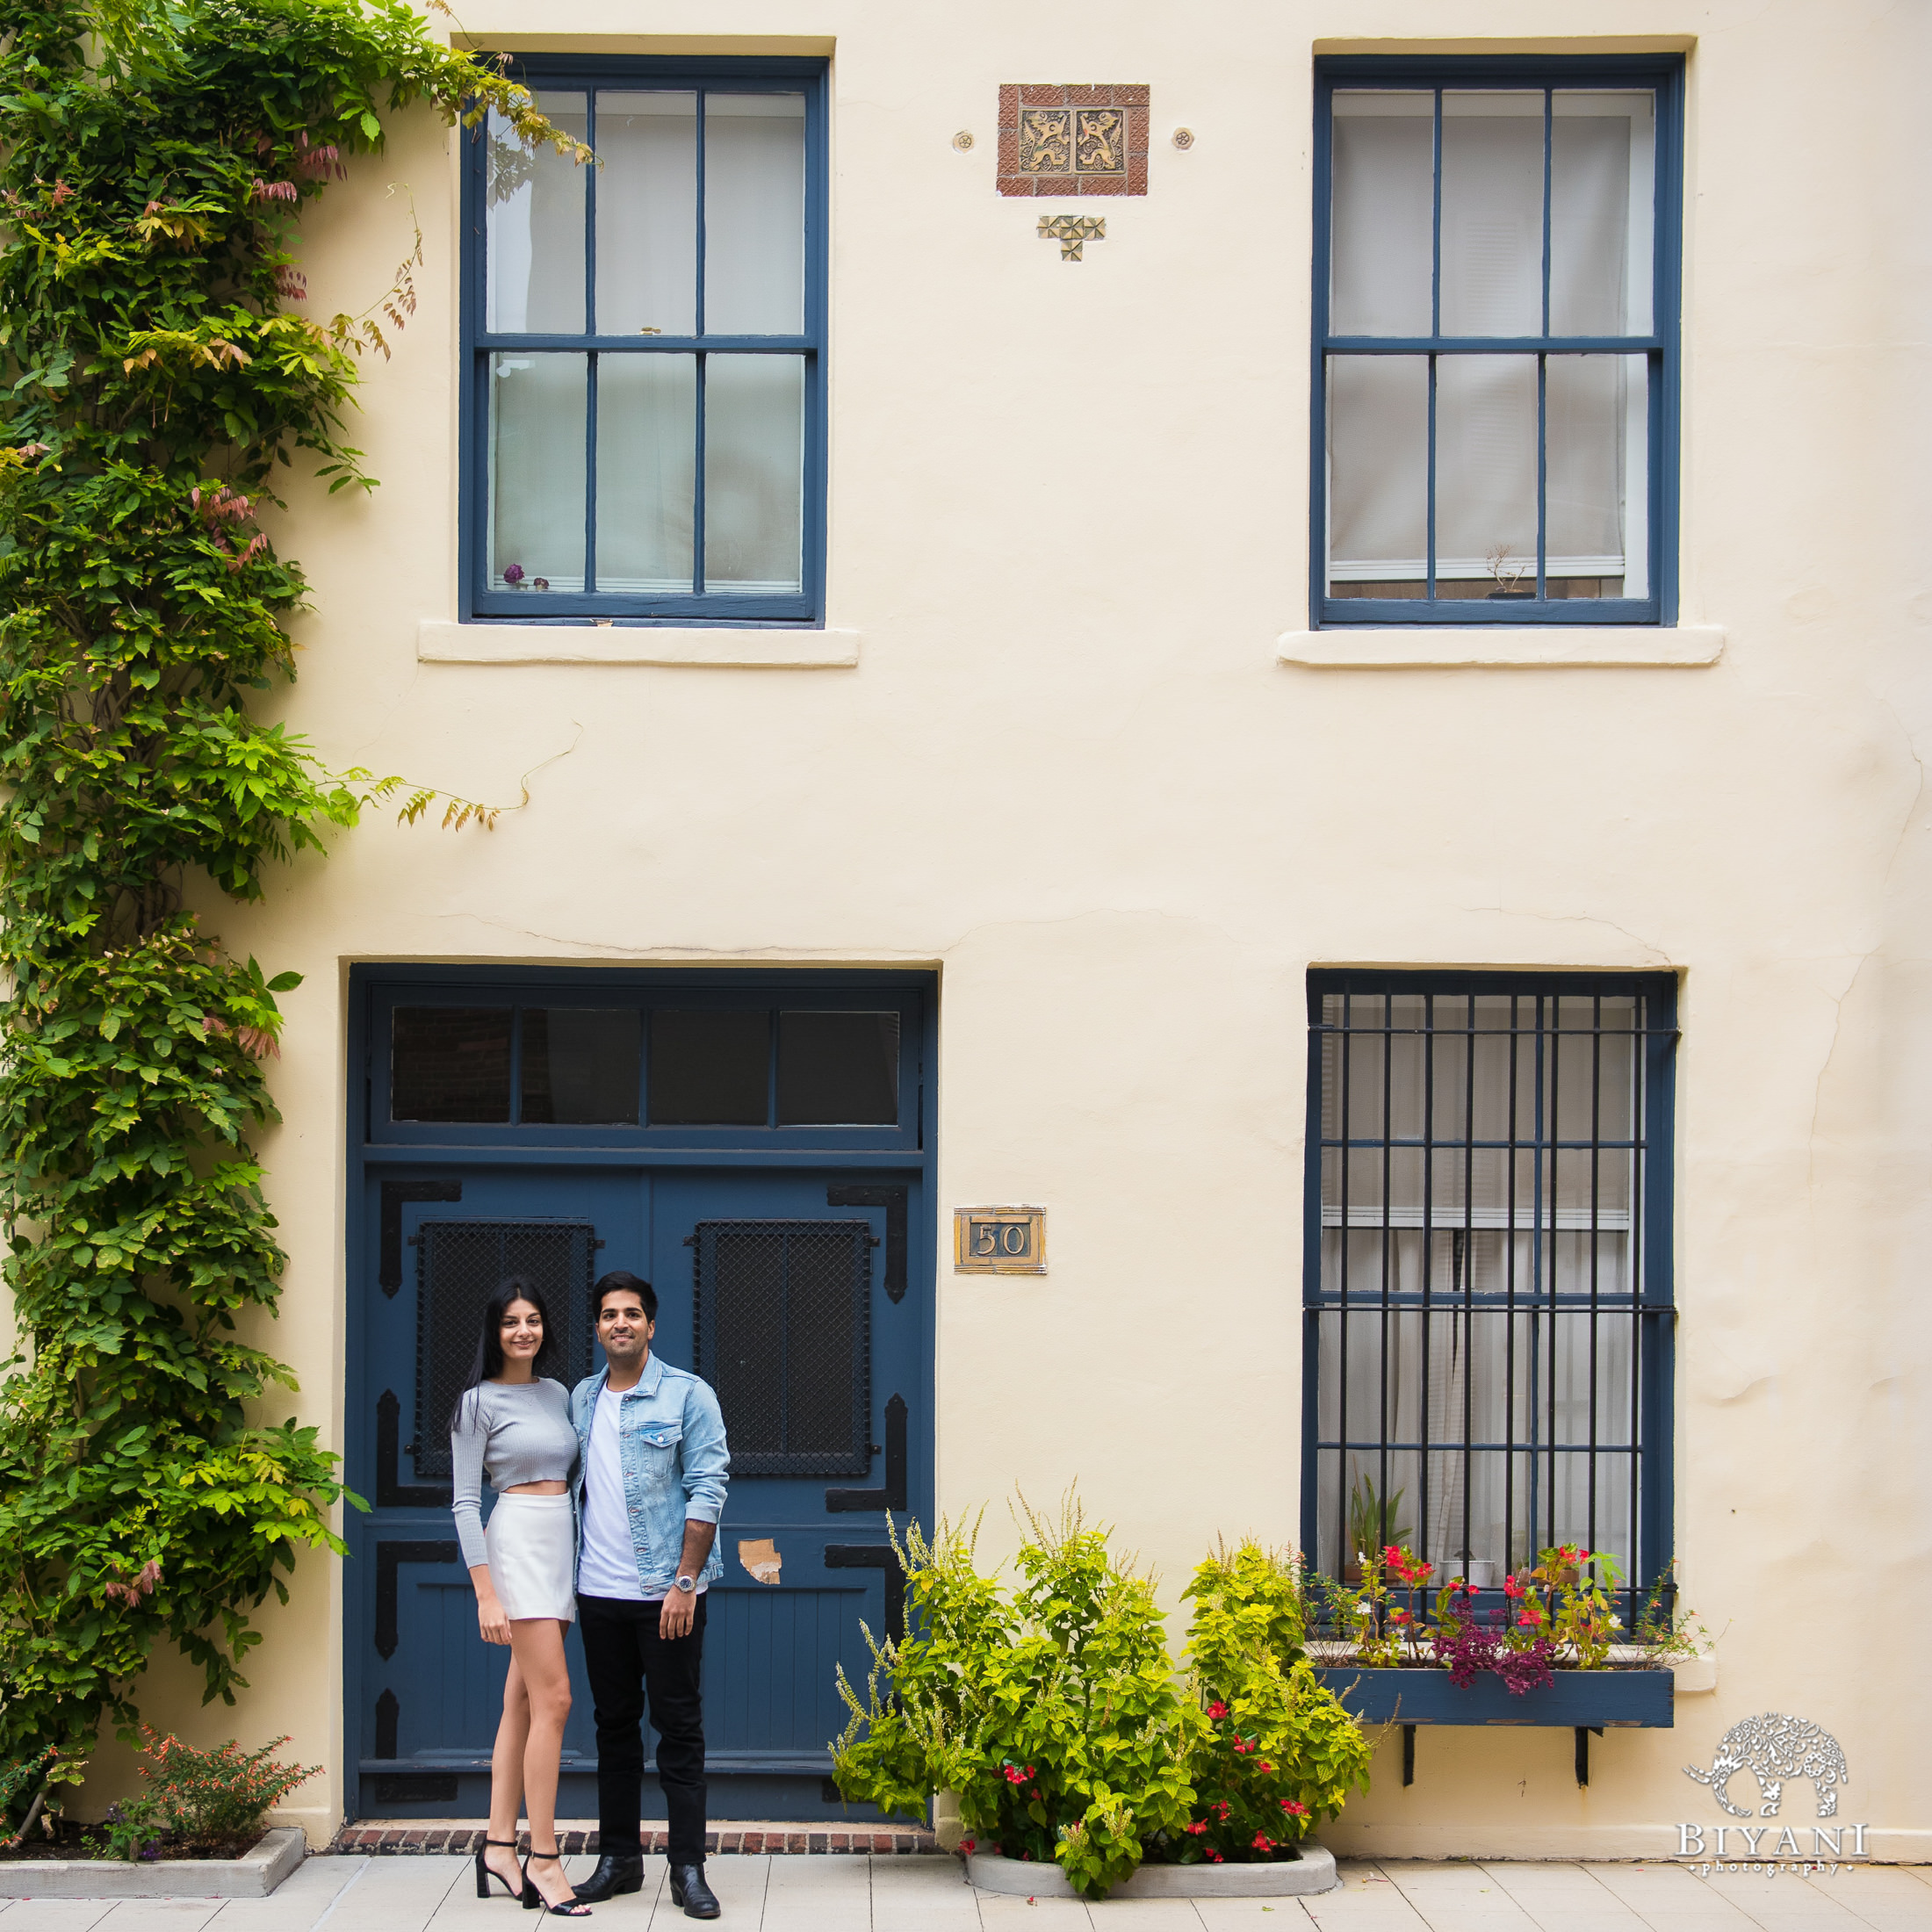 couple standing in front of a home with Ivy running down the wall